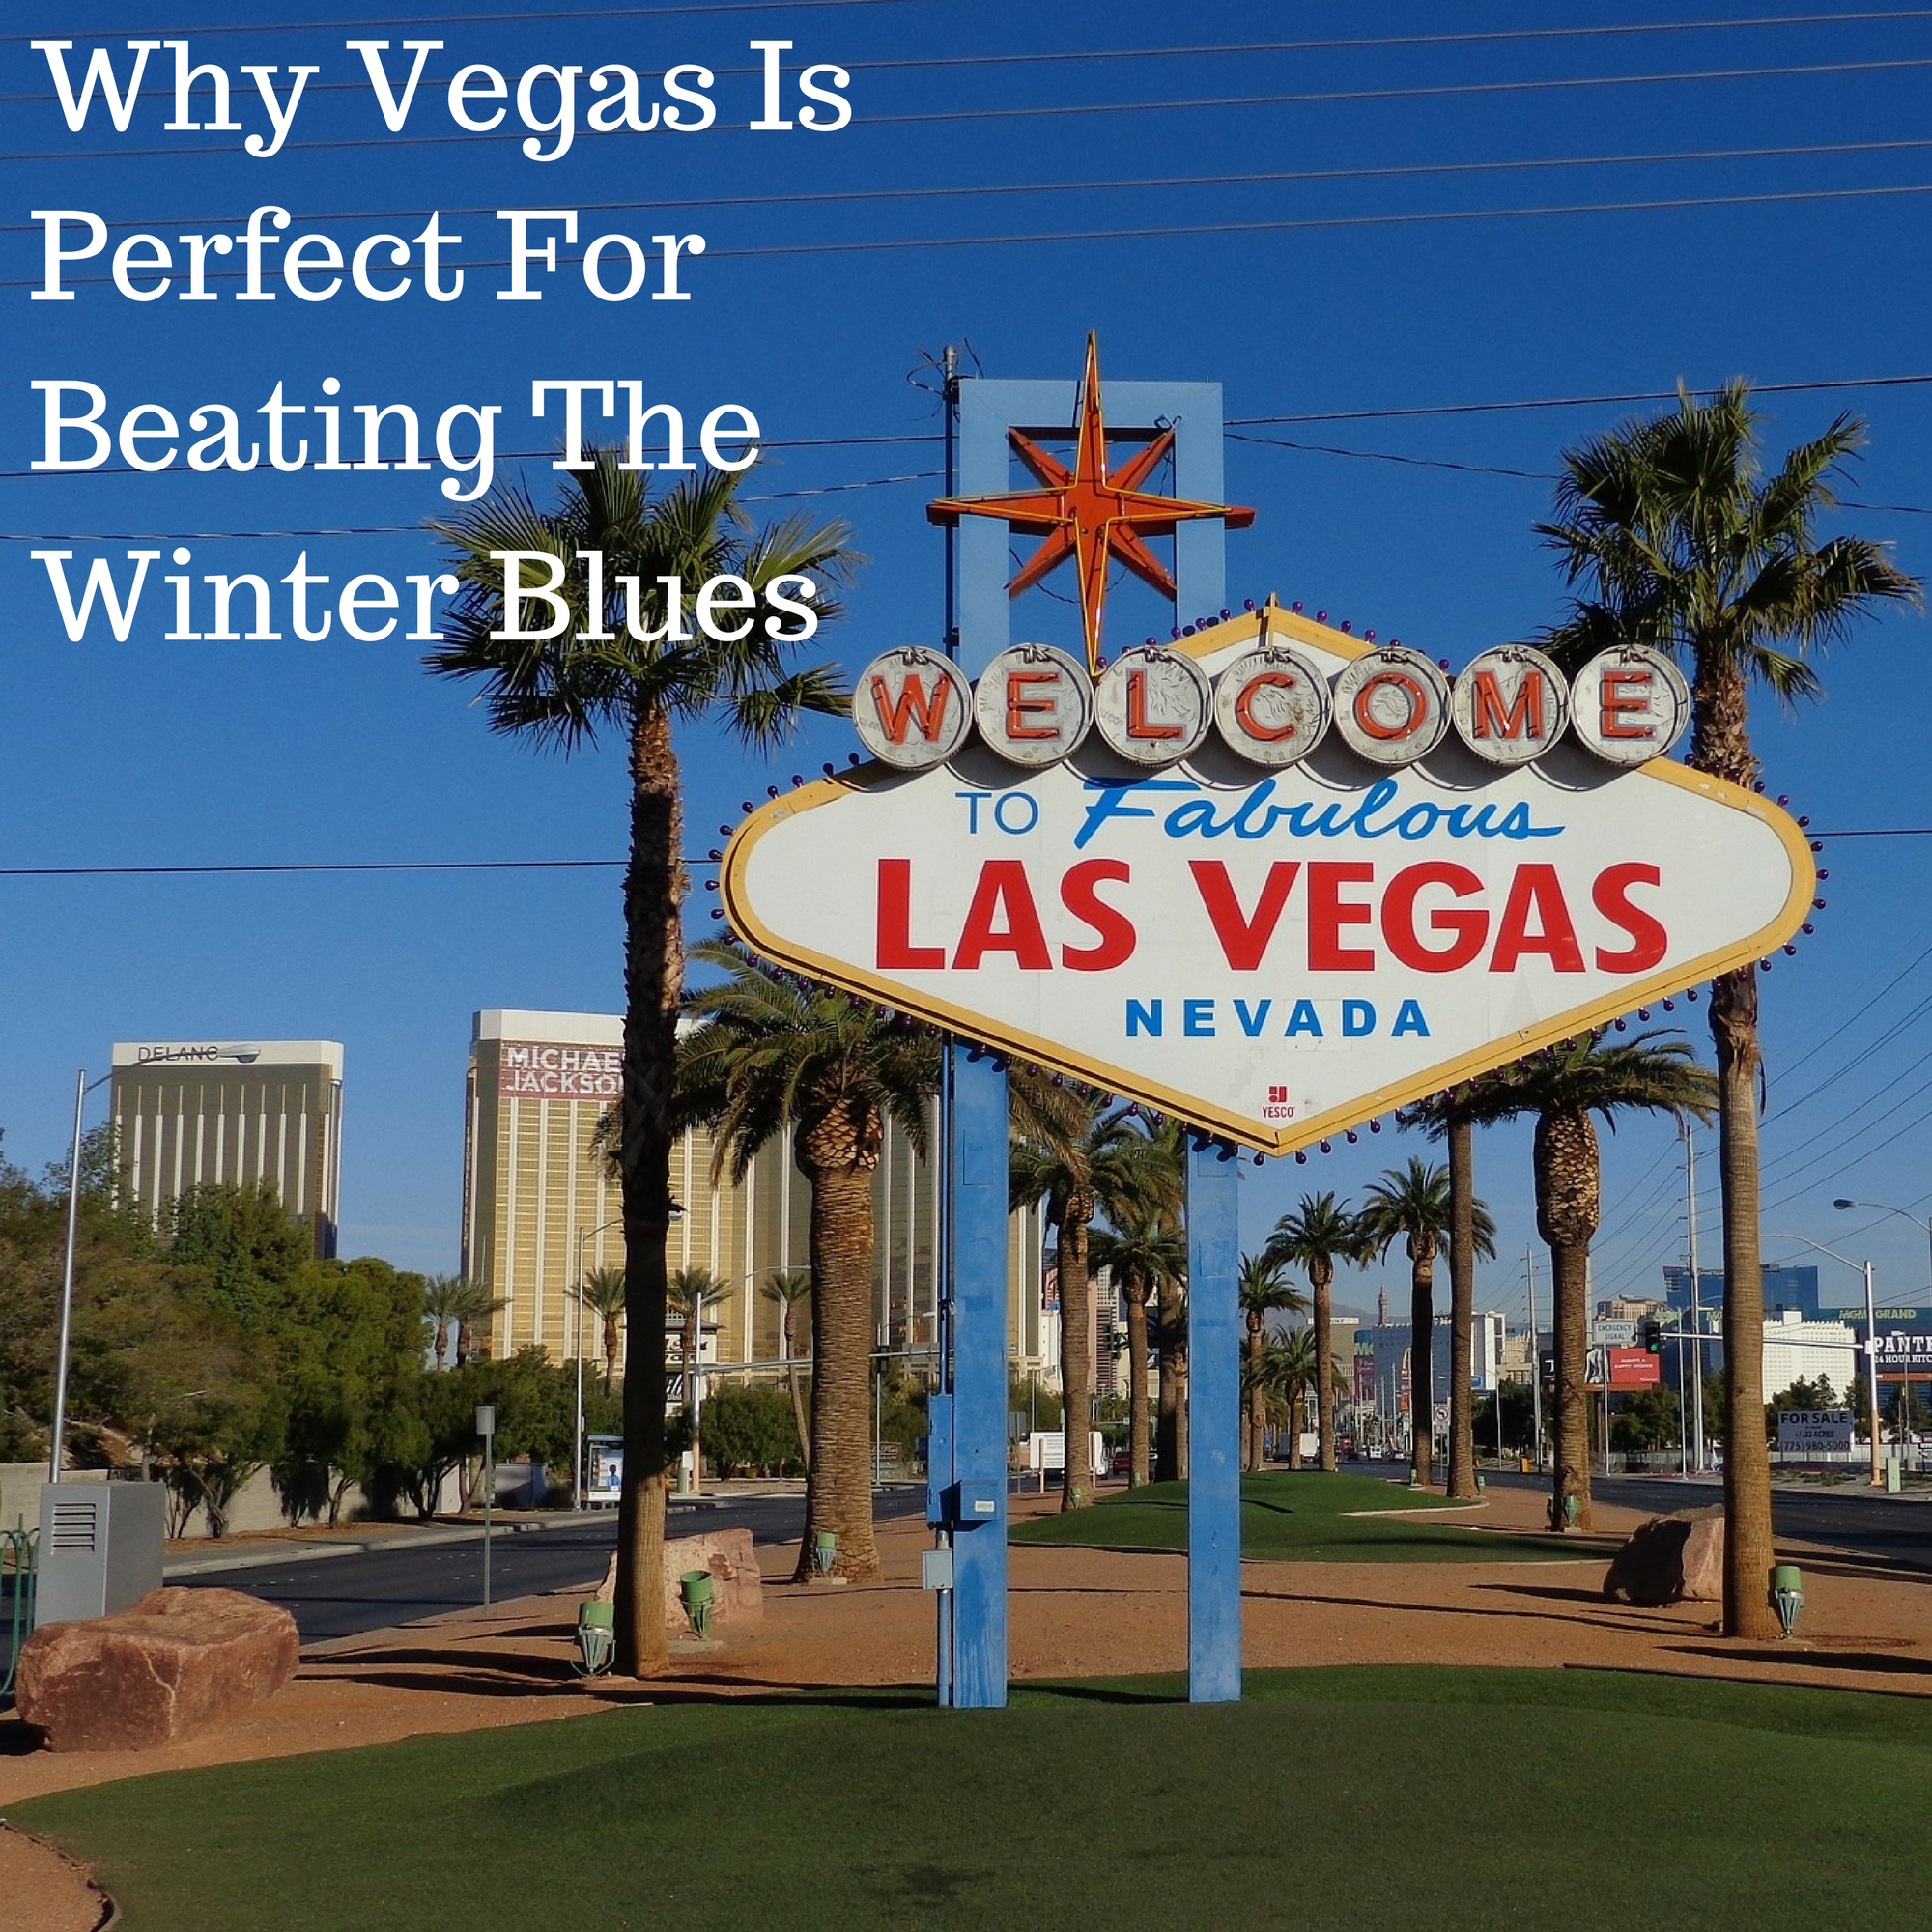 Why Vegas Is Perfect For Beating The Winter Blues